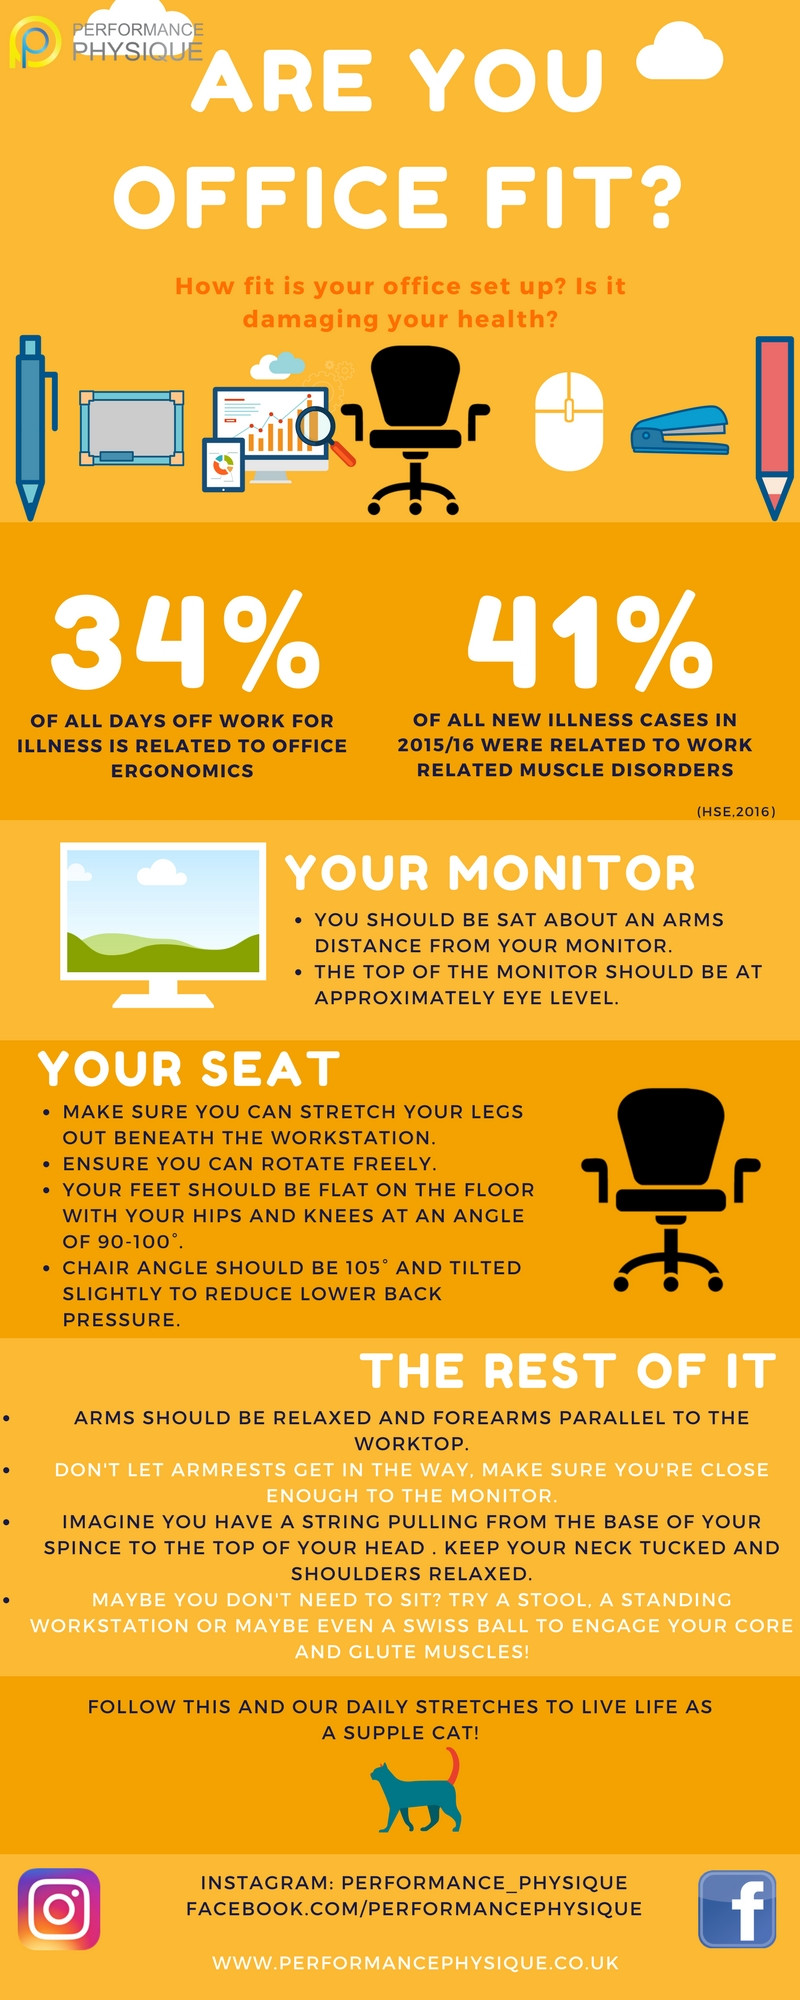 Are you office fit infographic, ergonomic workstation for posture and core strength.